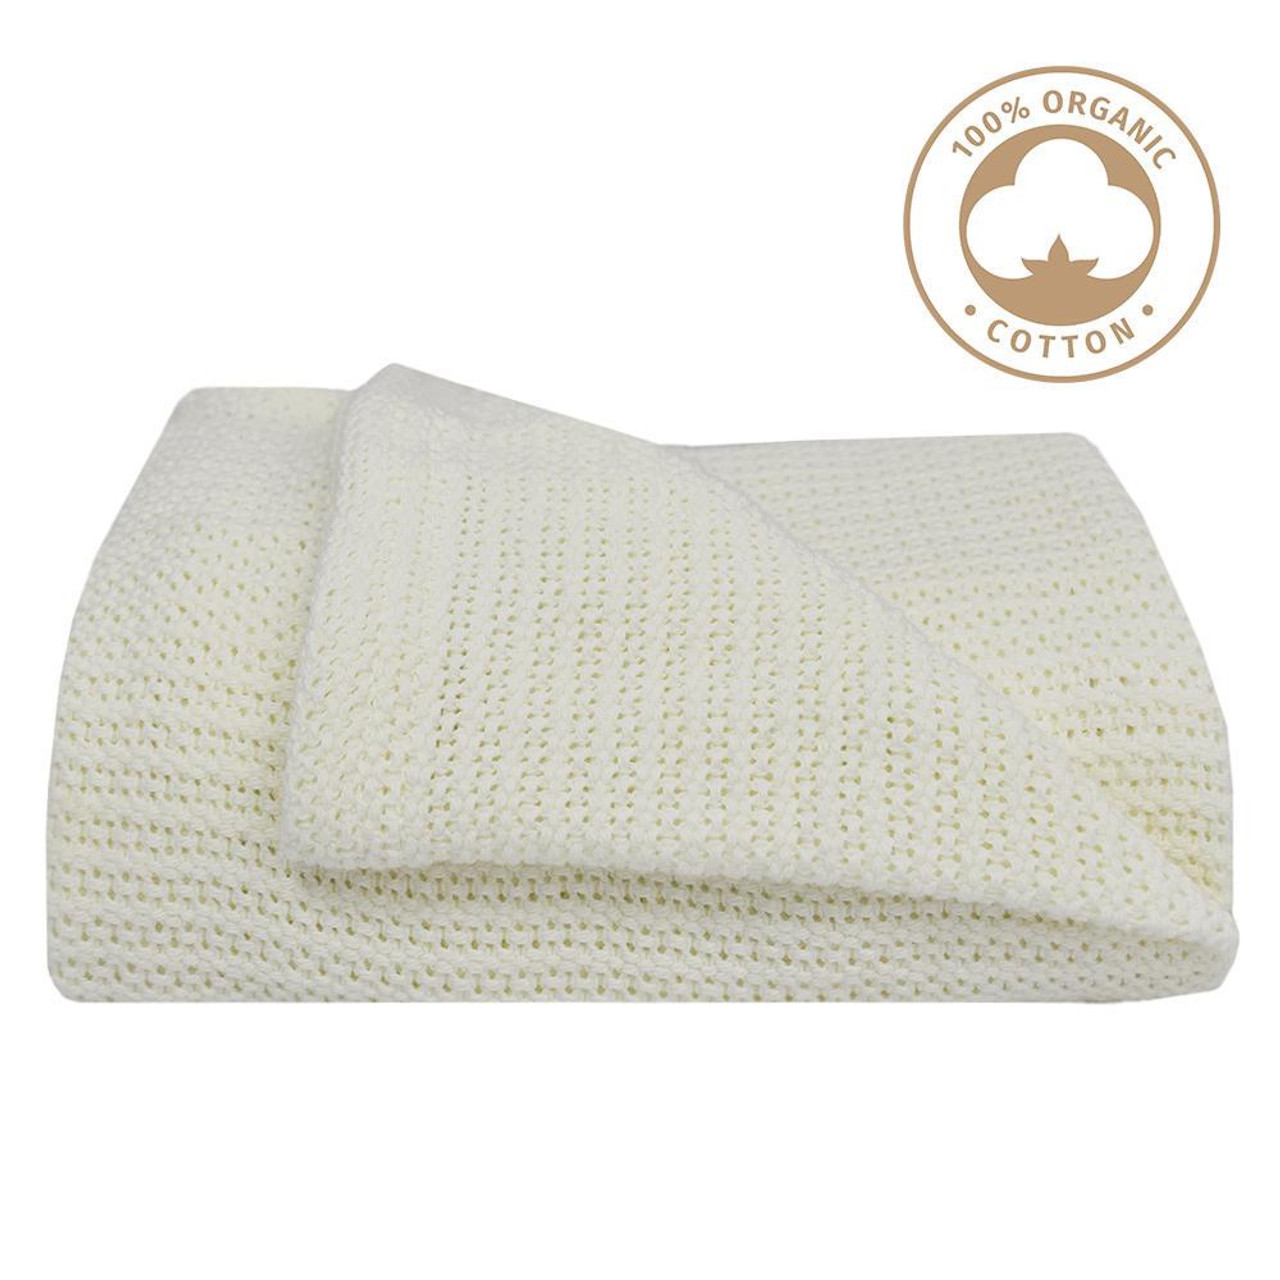 Living Textiles Organic Cot Cellular Blanket - WHITE